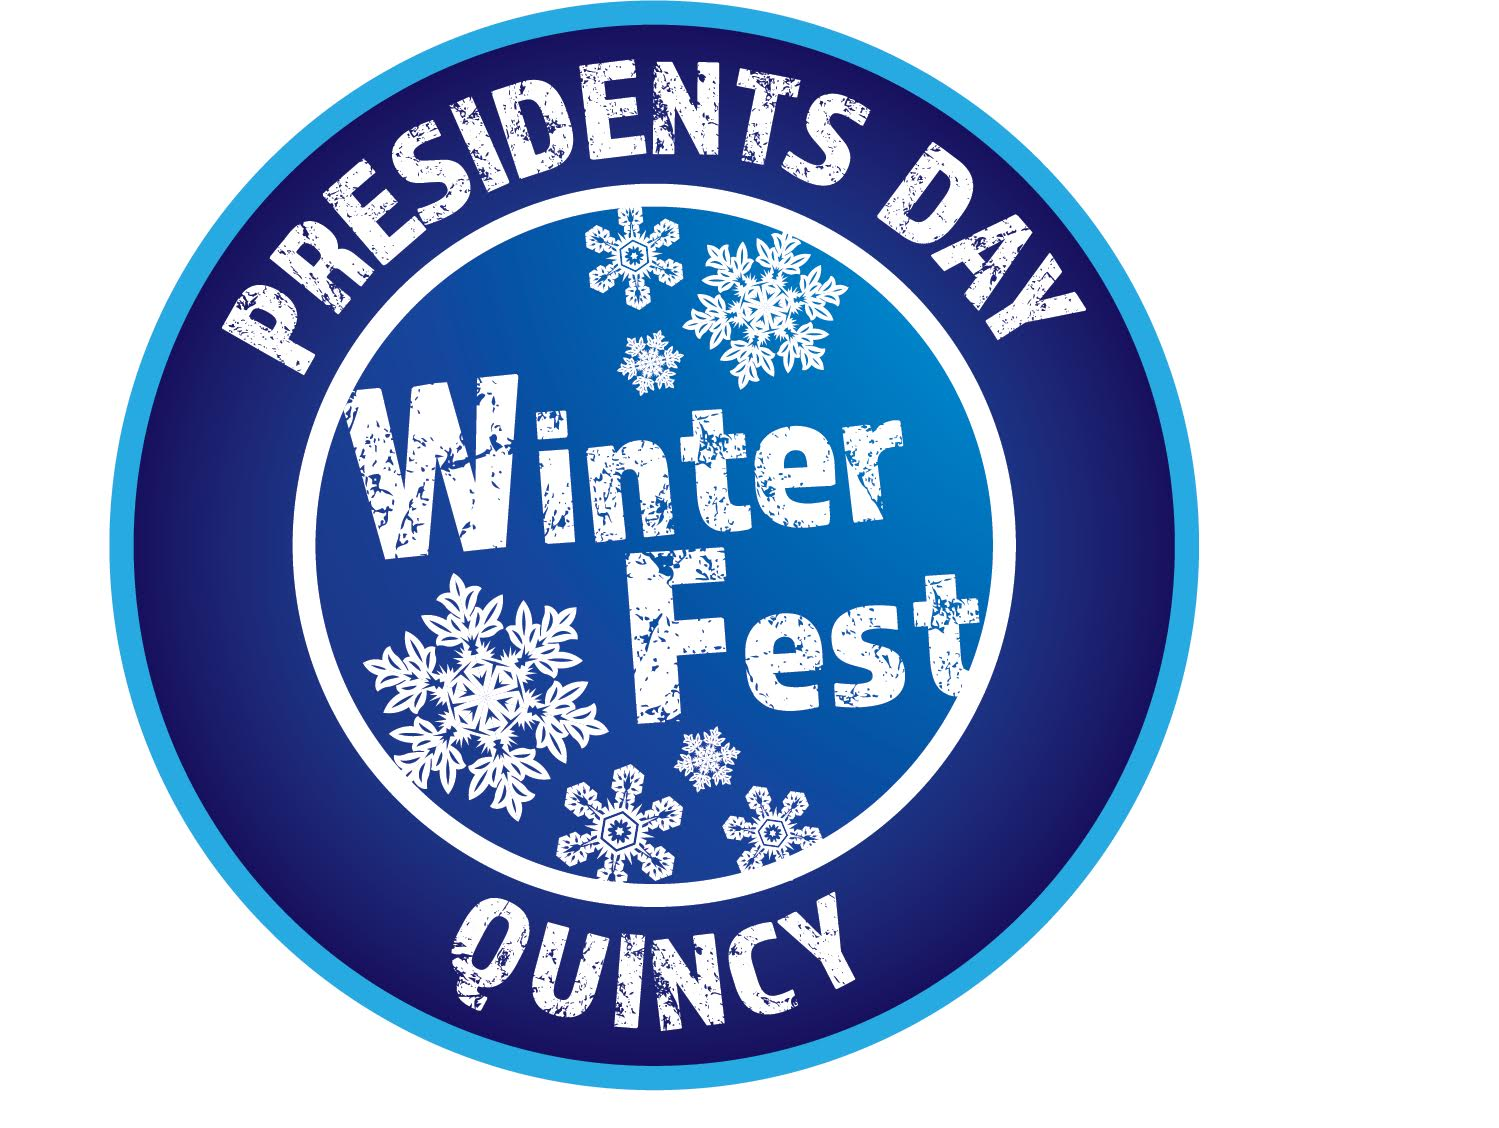 Cucina Mia Quincy Hours Presidents Day Winter Fest In Quincy The City Of Presidents 02